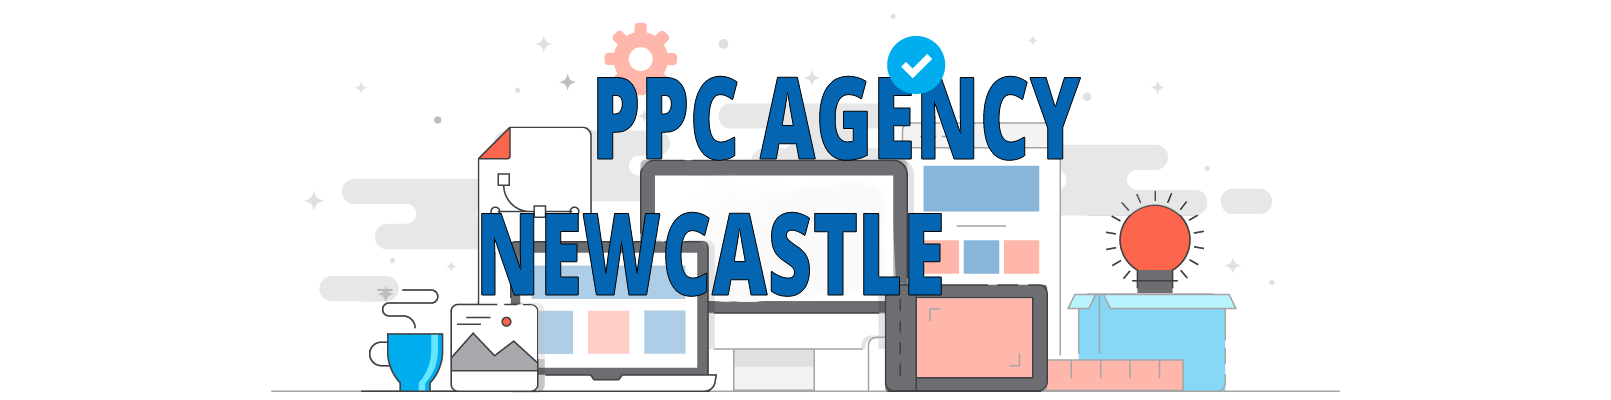 ppc agency newcastle to manage your marketing campaign